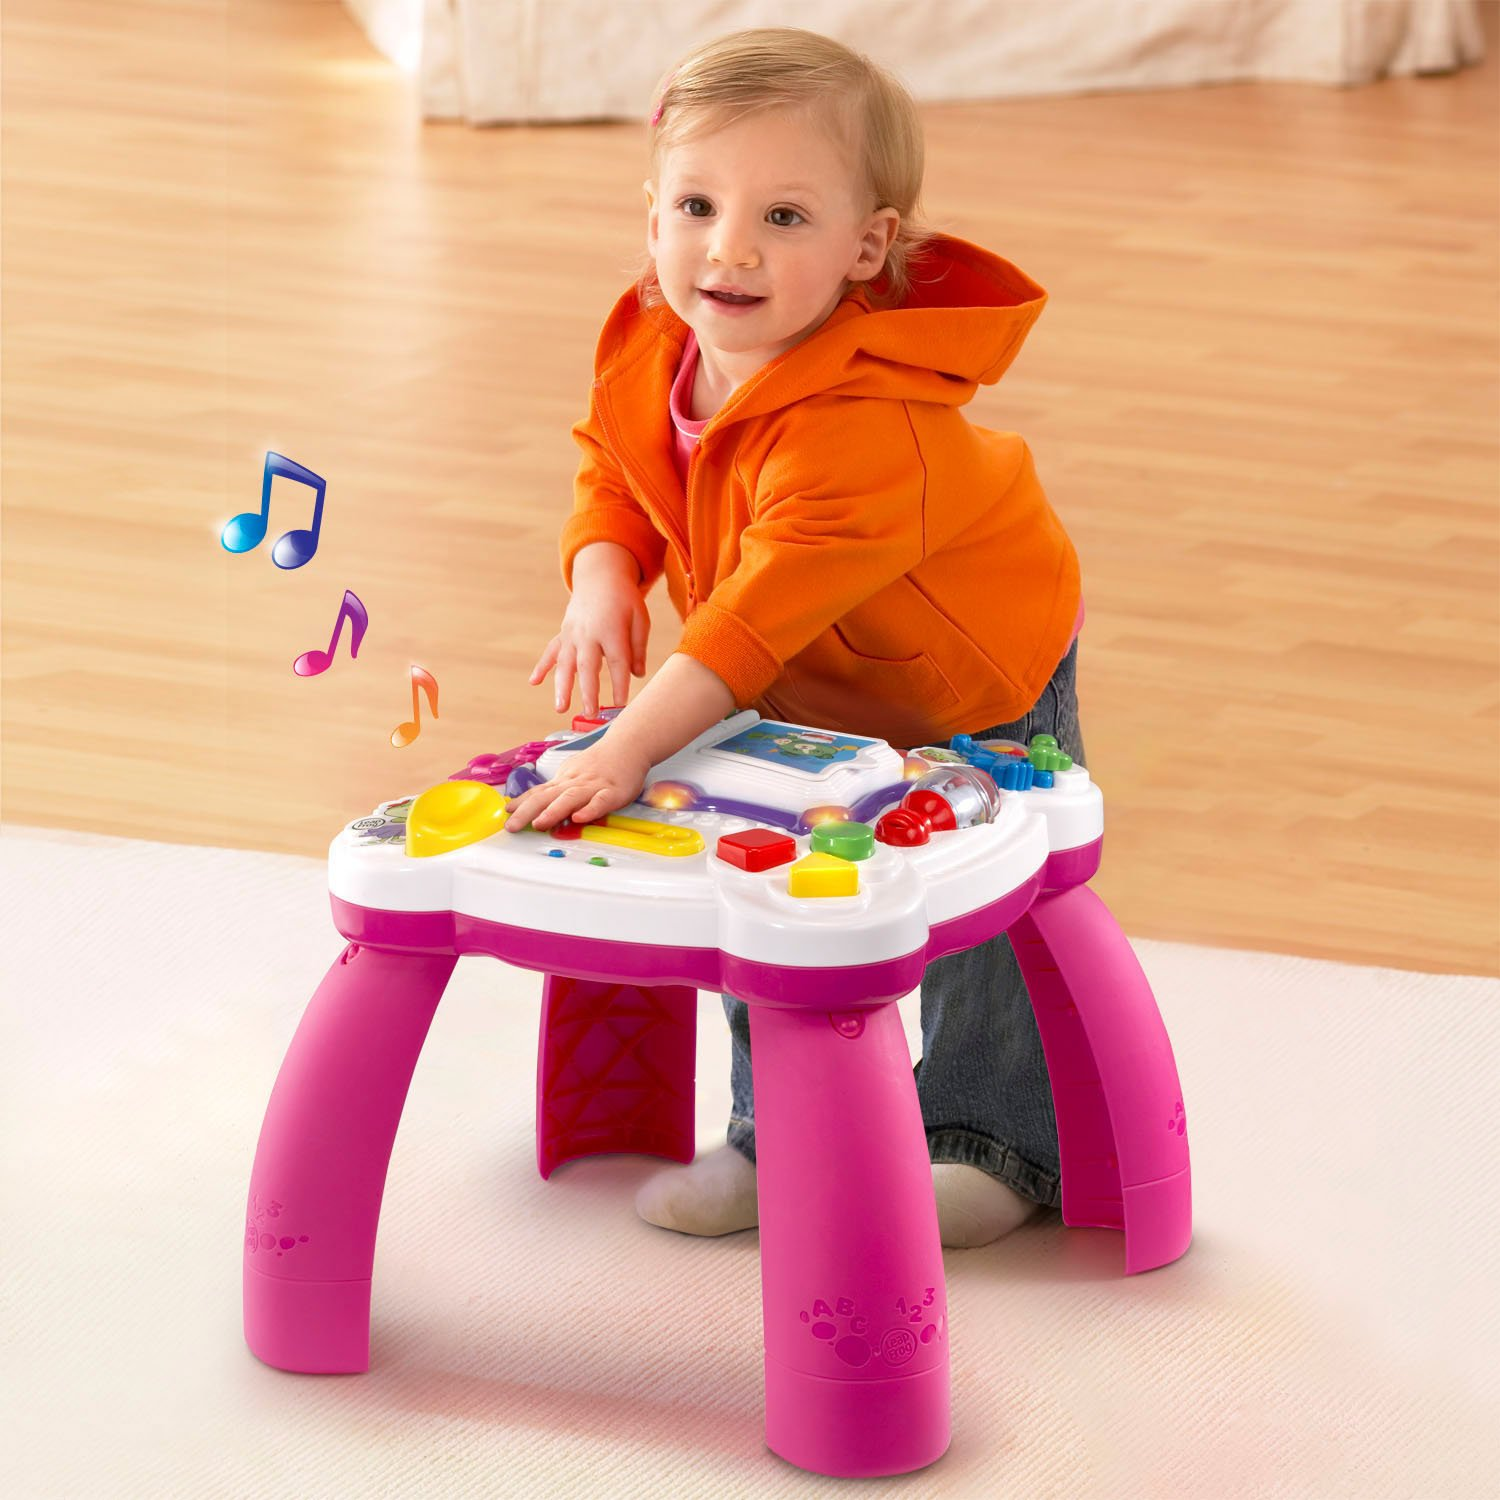 LeapFrog Learn and Groove Musical Table Activity Center Amazon Exclusive, Pink by LeapFrog (Image #6)